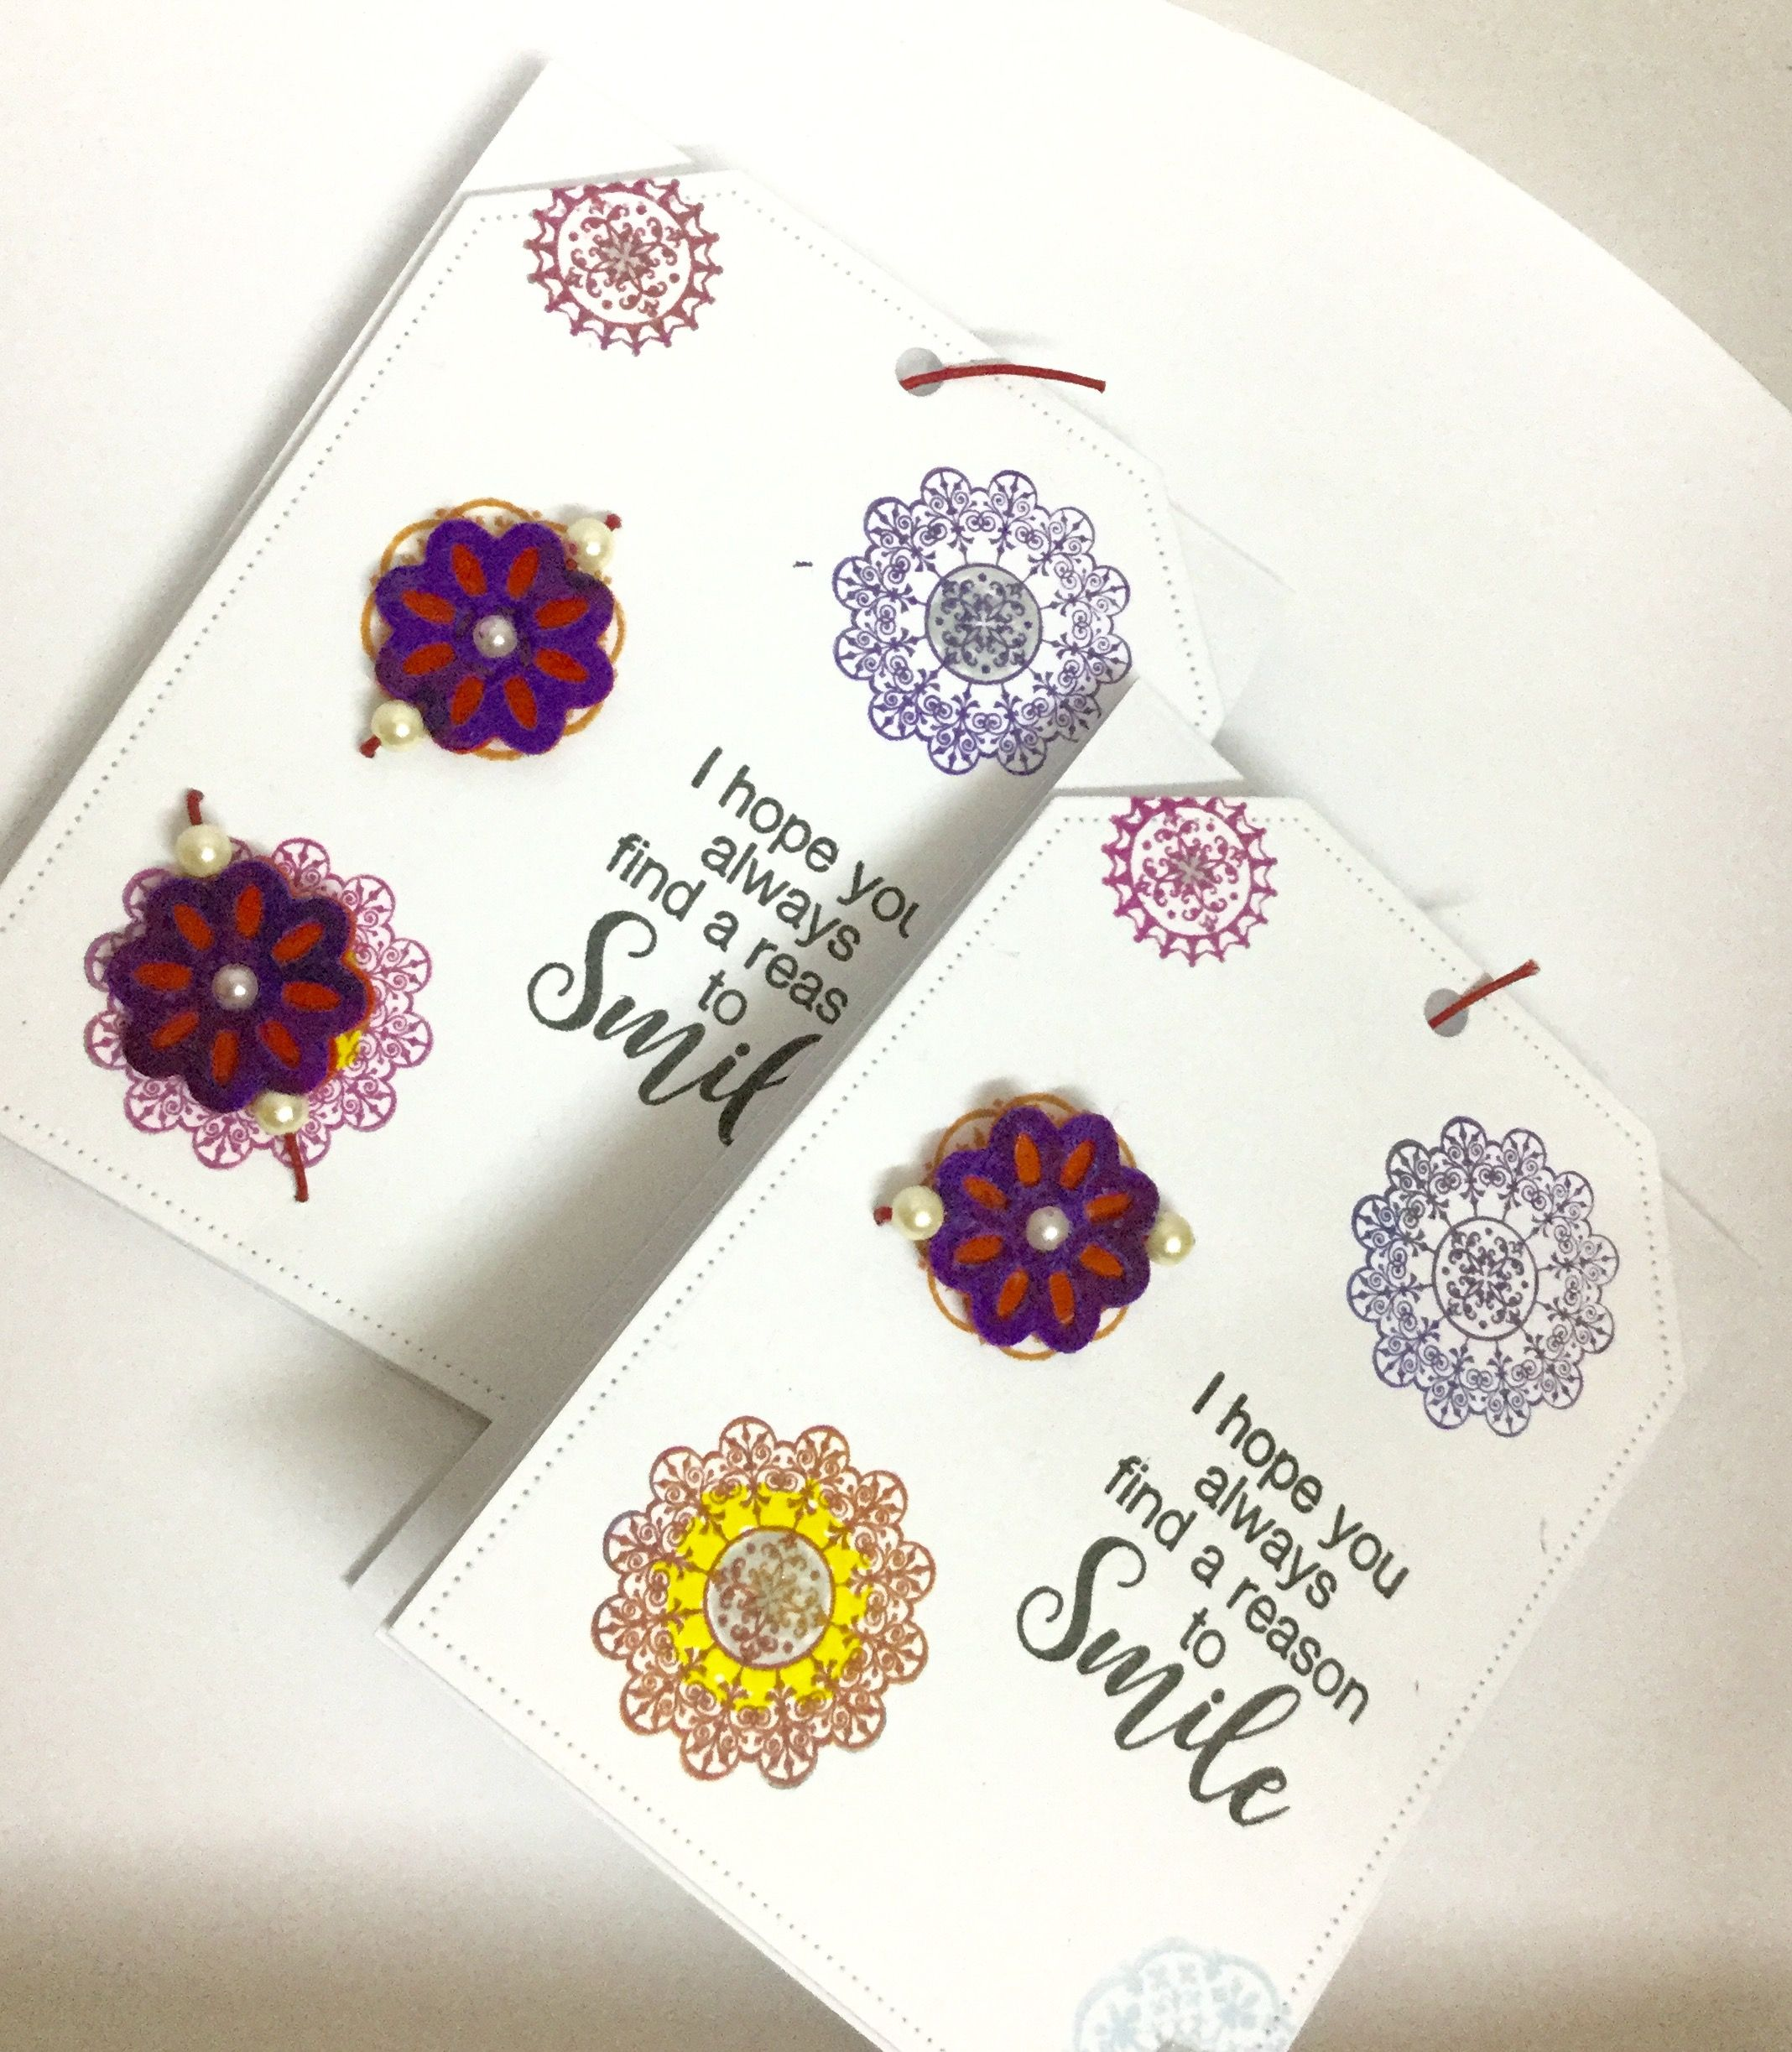 A quick rakhi card made with felt stamps and spellbinder dies a quick rakhi card made with felt stamps and spellbinder dies kristyandbryce Image collections